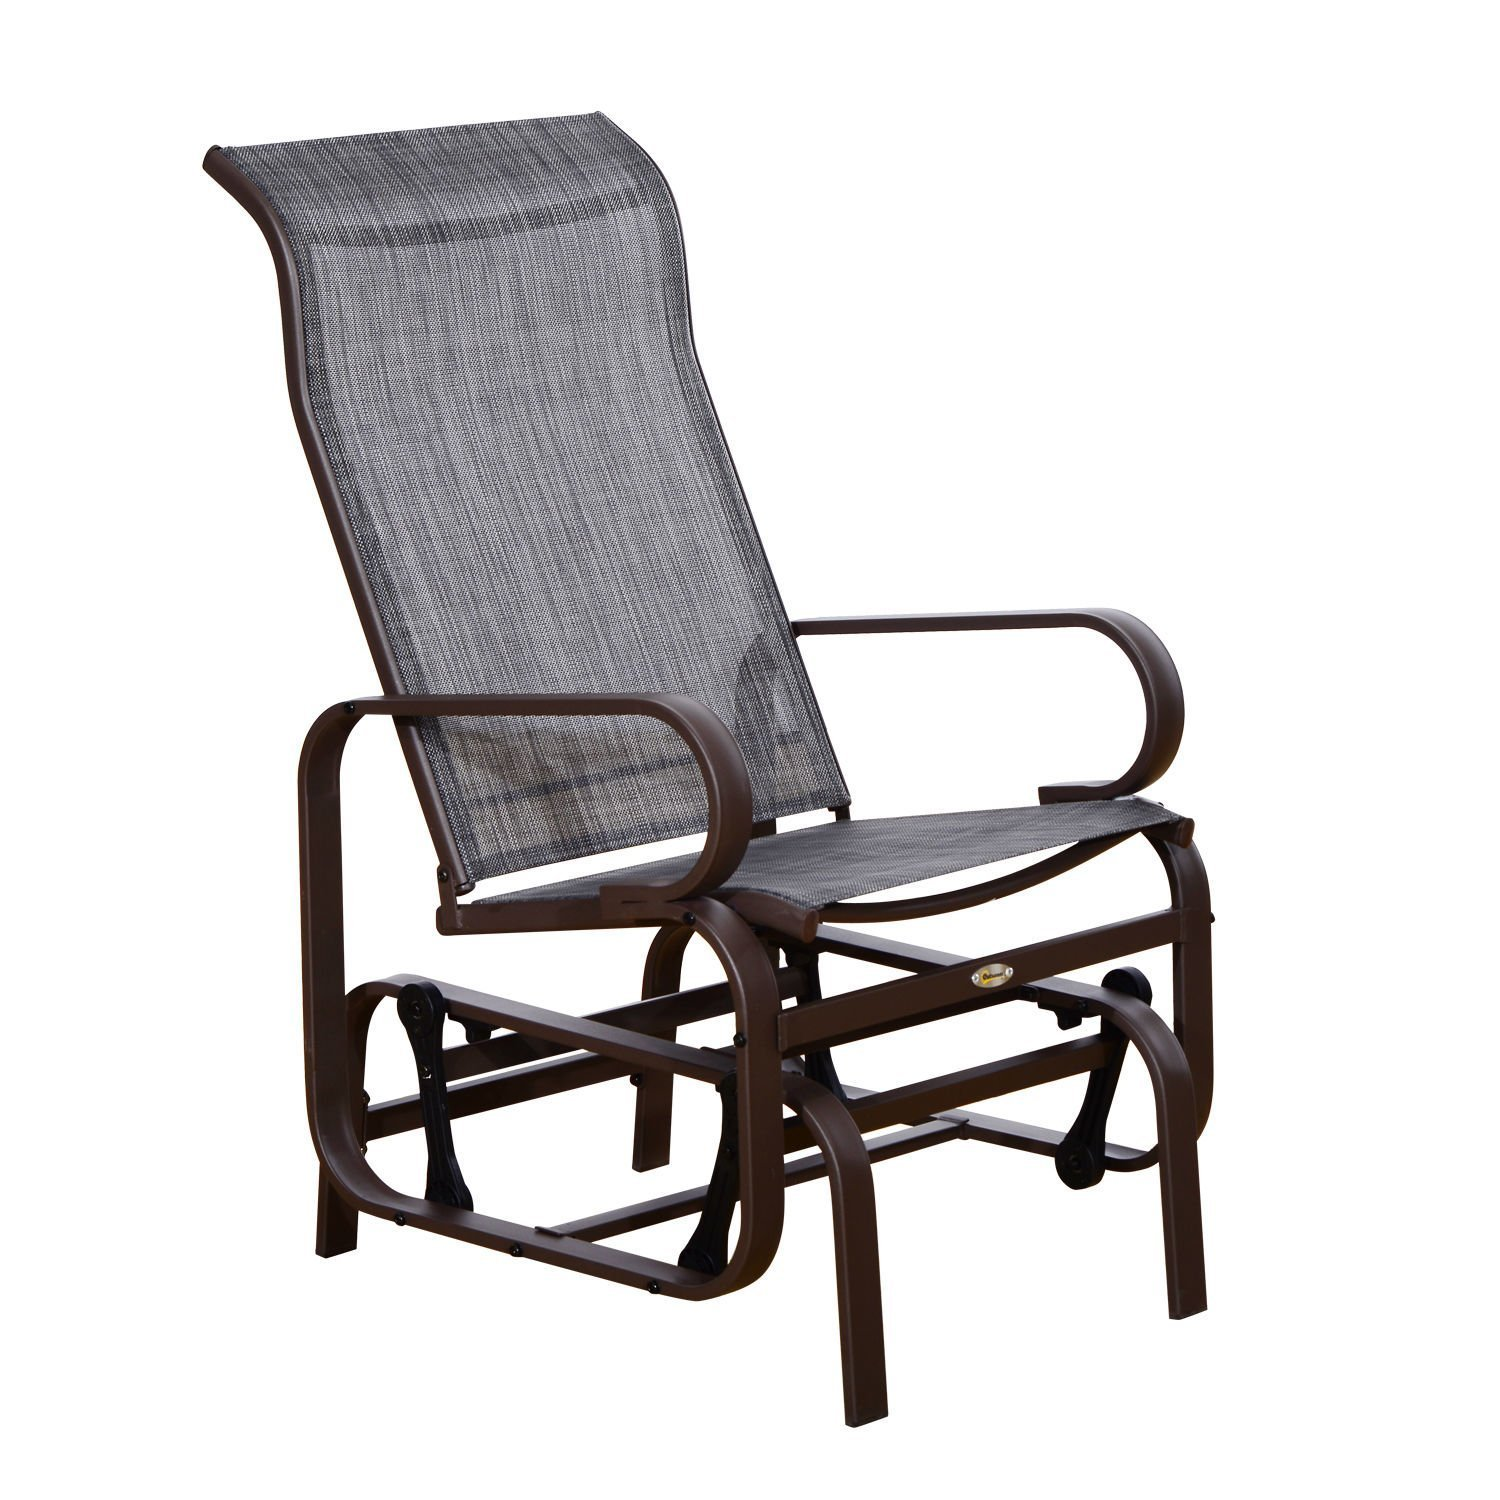 Outsunny Metal Mesh Fabric Single Outdoor Patio Glider Rocking Chair - Brown by Outsunny